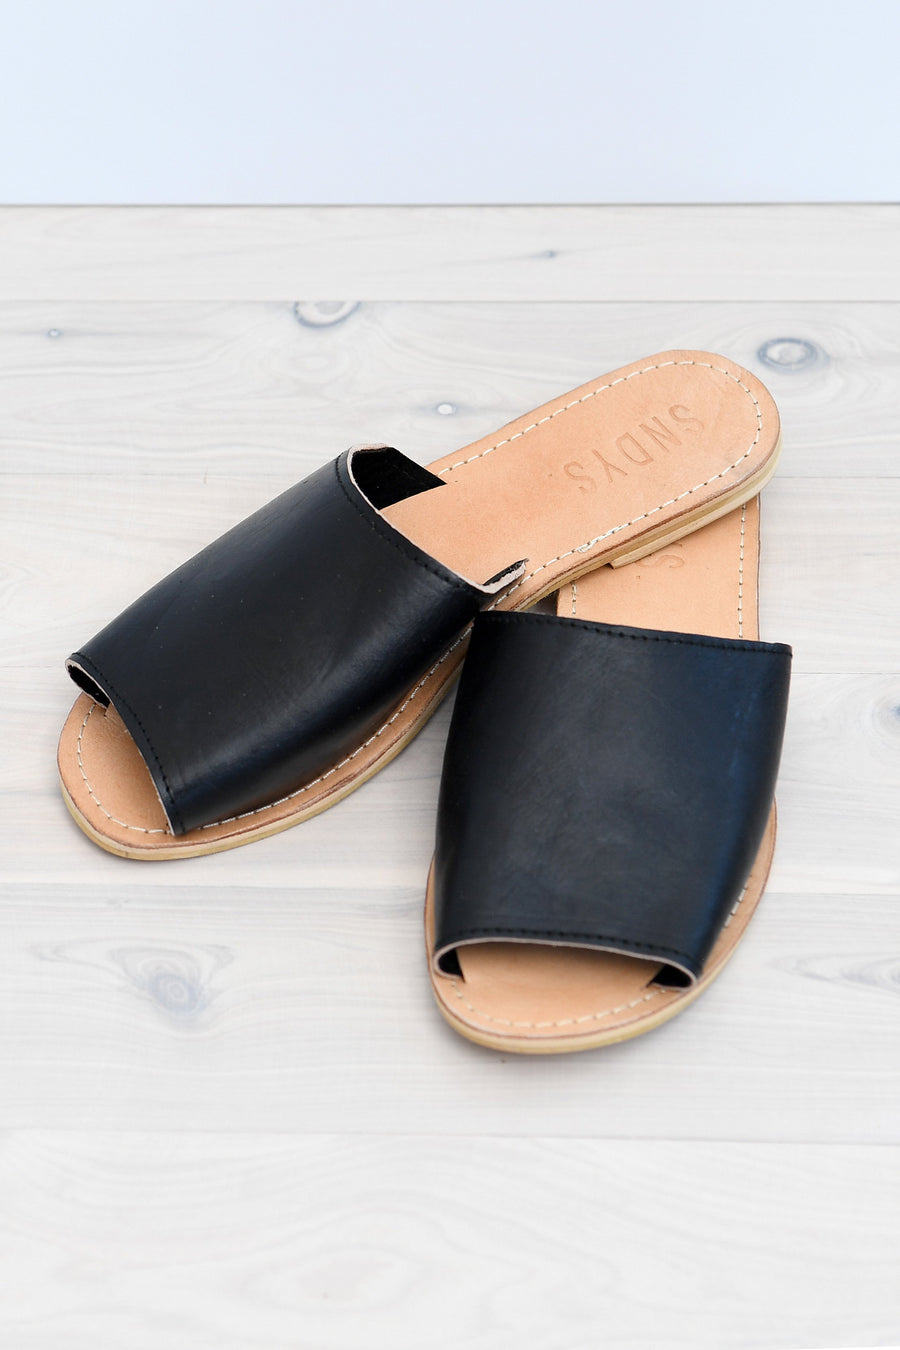 LIANA SLIDES - BLACK